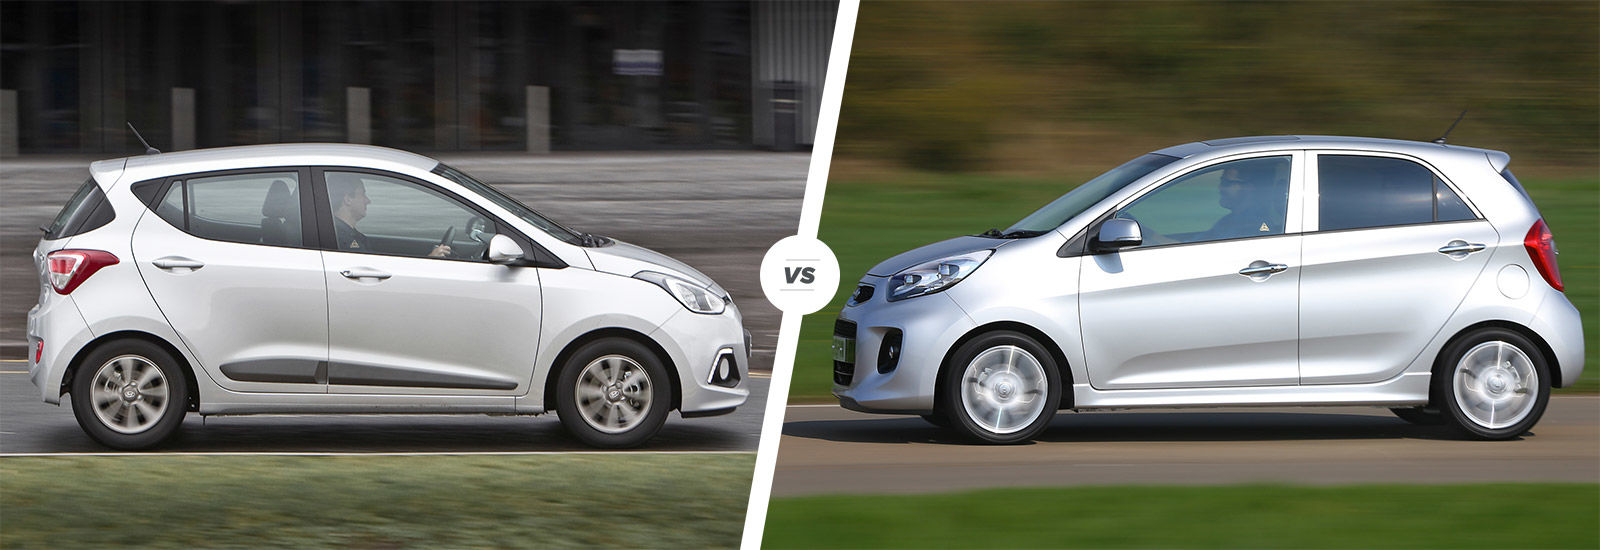 kia rio vs yaris 2012 with Hyundai I10 Vs Kia Picanto 937 on 2012 Rio as well Watch besides 2839 as well Presentation Joanna Russ A Few Things I Know About Whileaway besides Lower Ball Joint Replacement Cost.